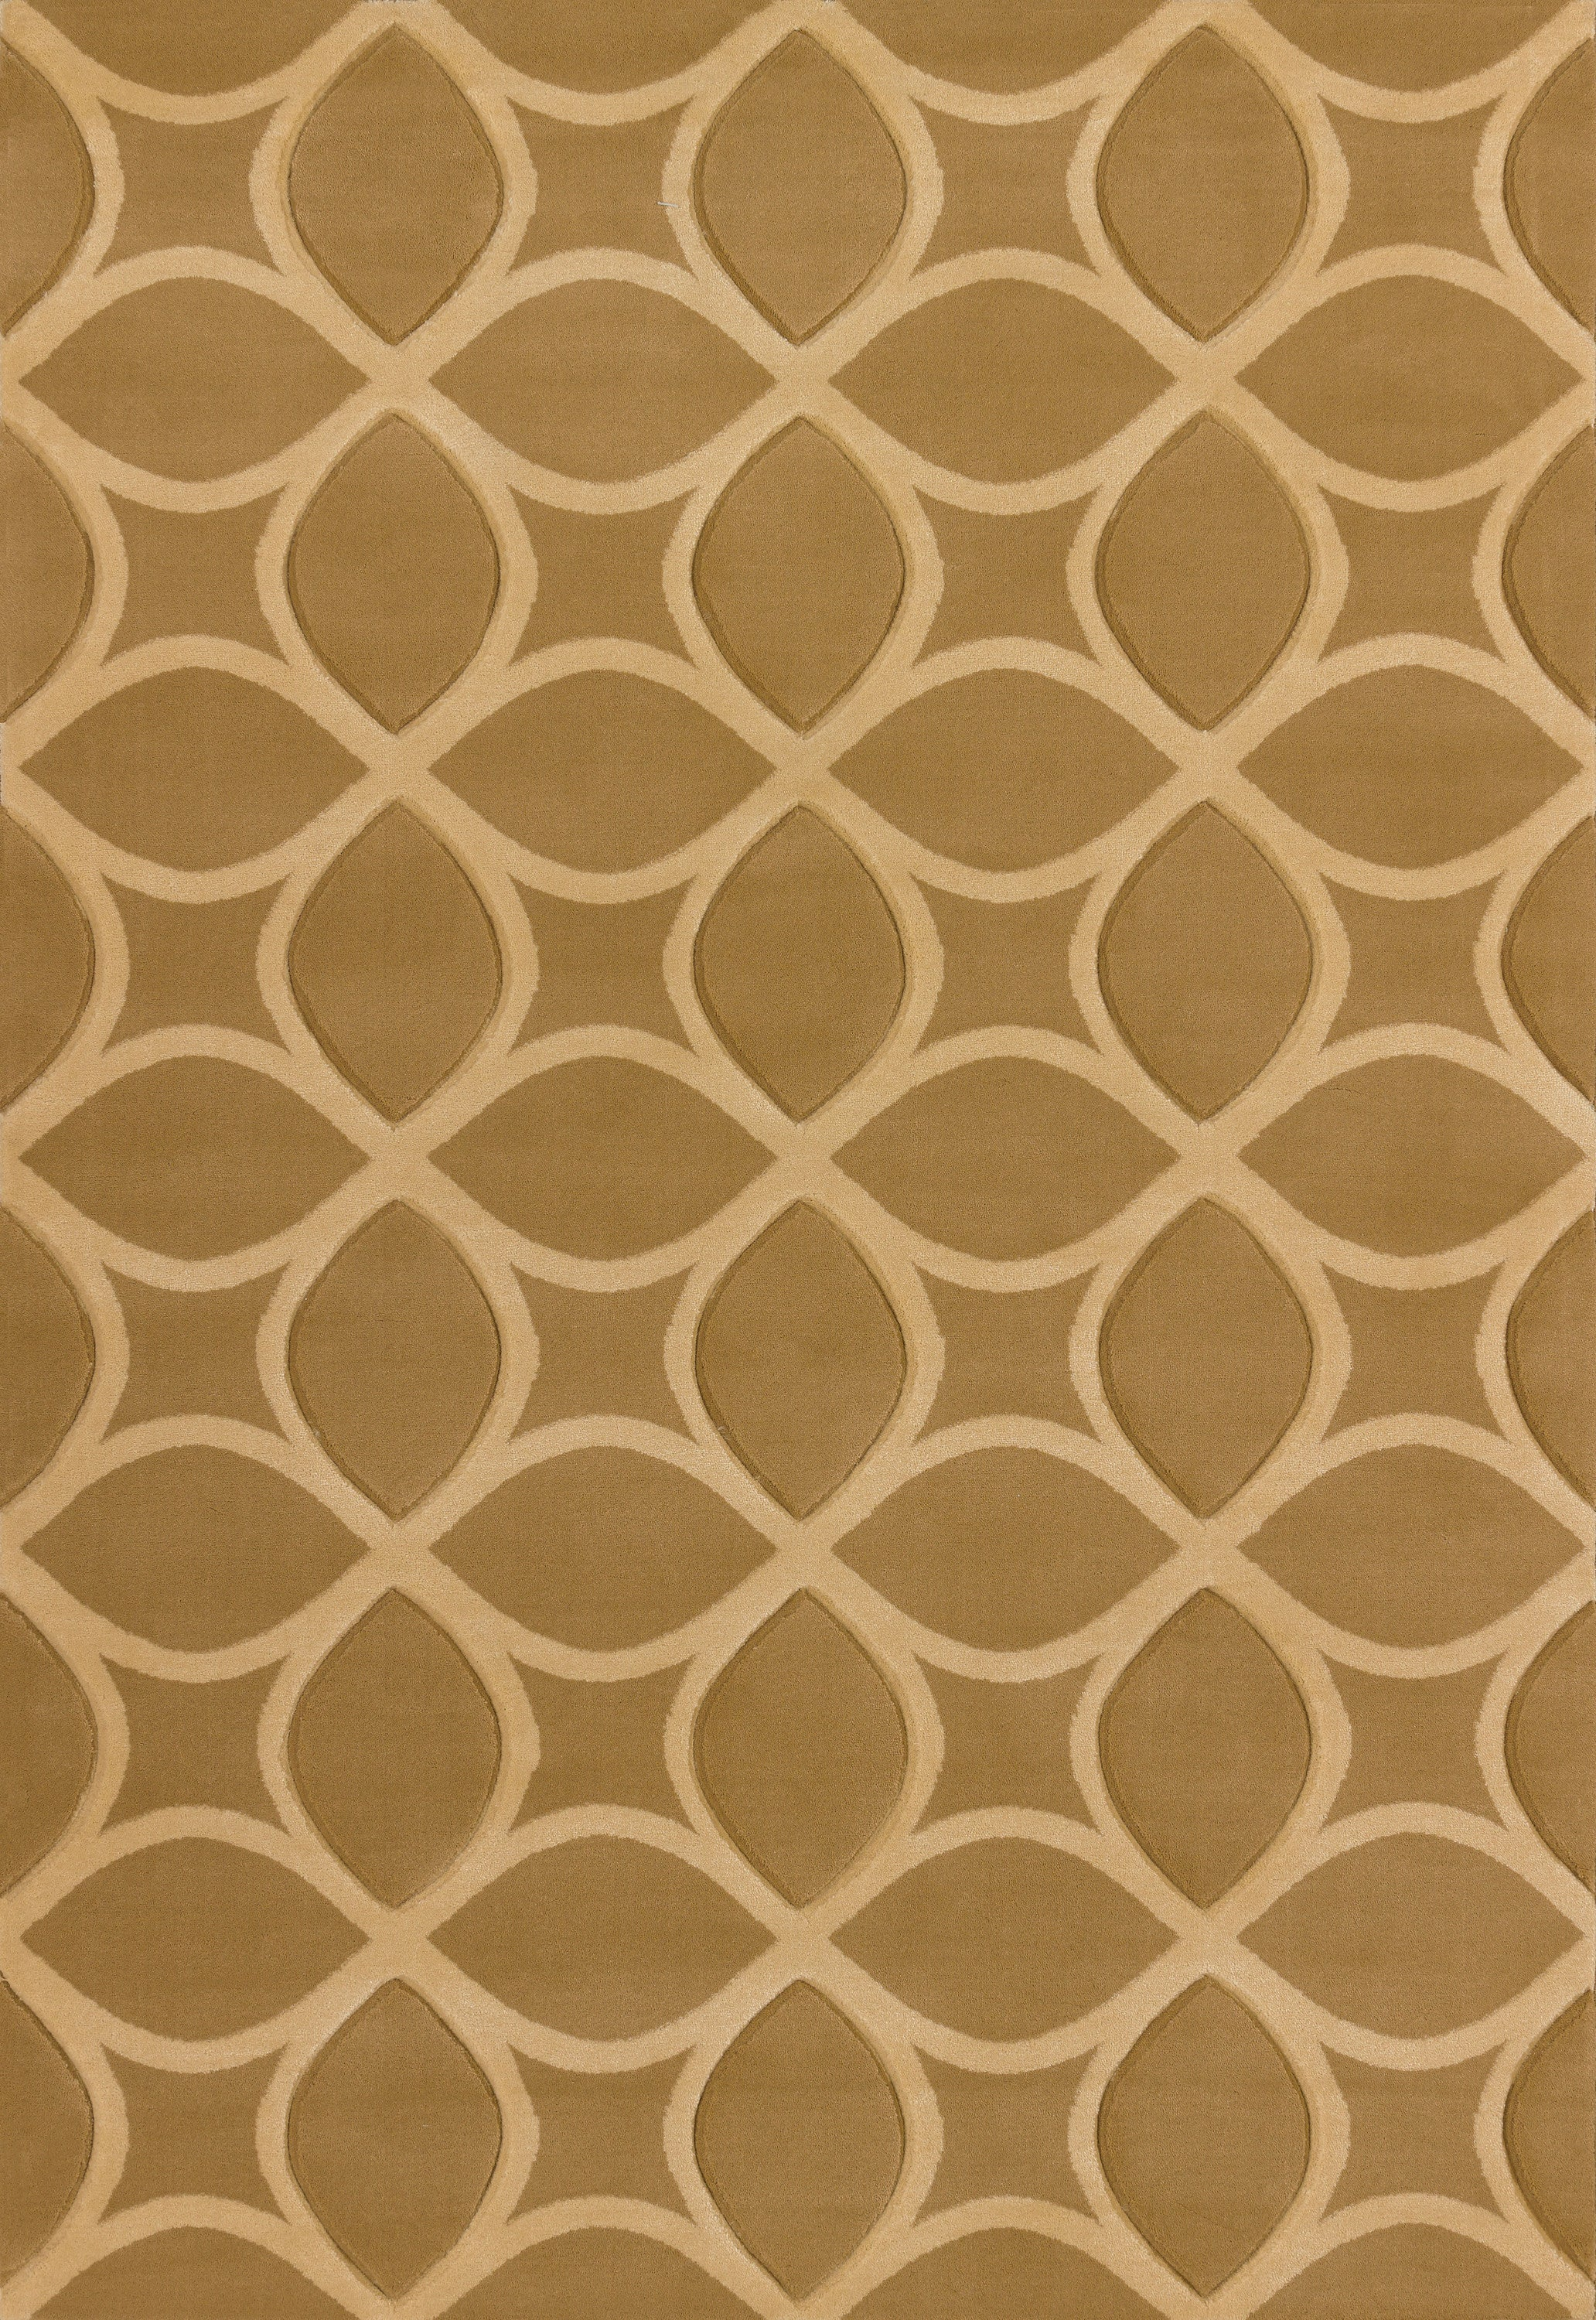 United Weavers - Contours Rug Collection - ISOMER BEIGE (510-28926)